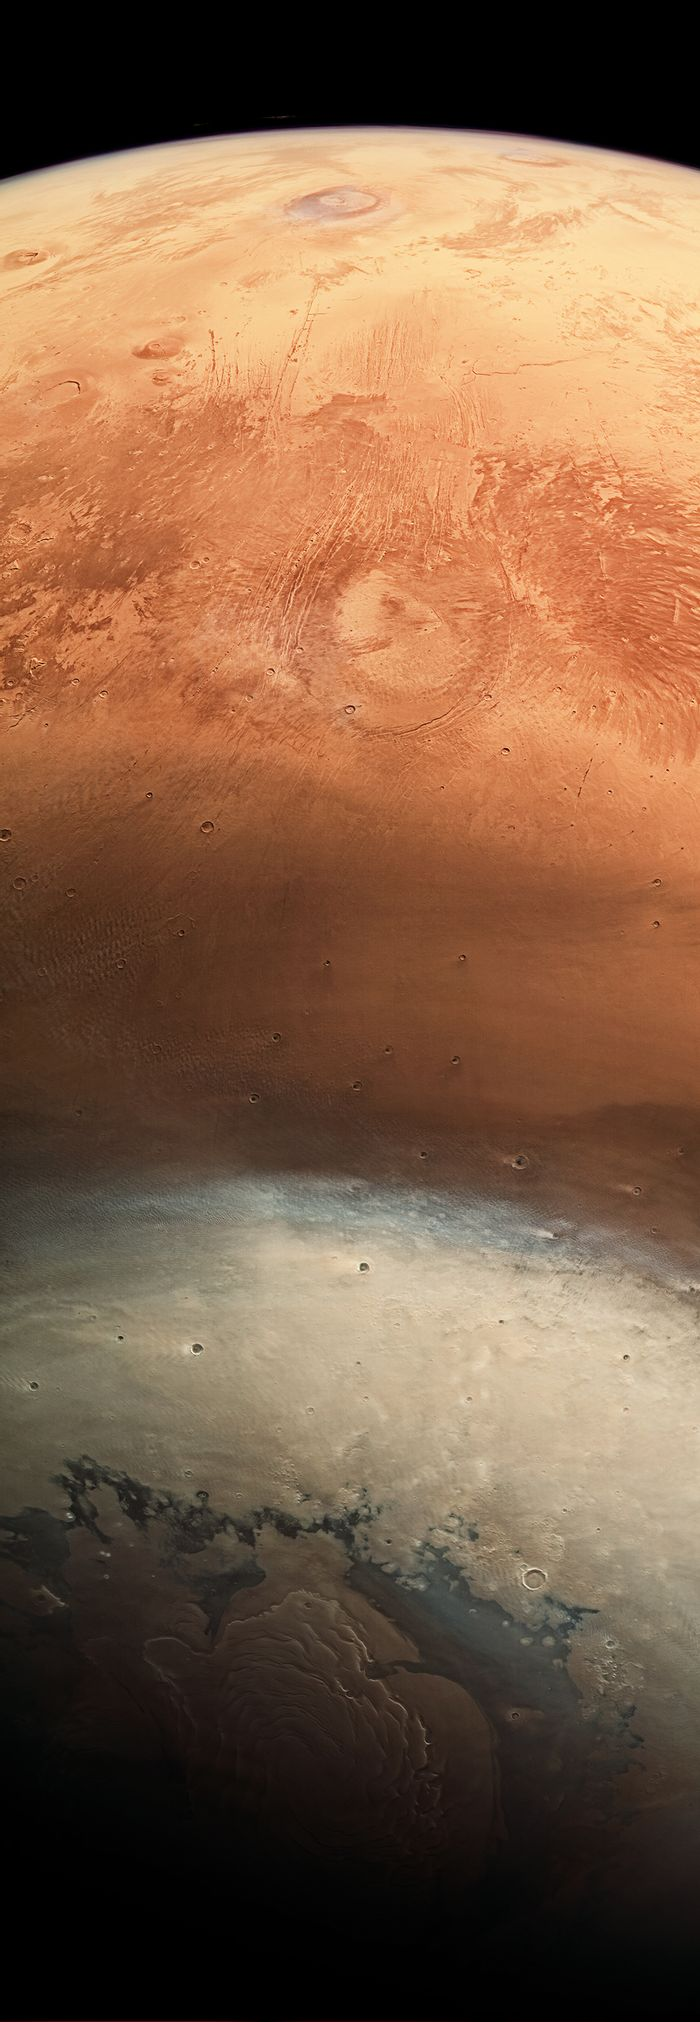 A detailed wide-angle image of Mars snapped by the ESA's Mars Express spacecraft.